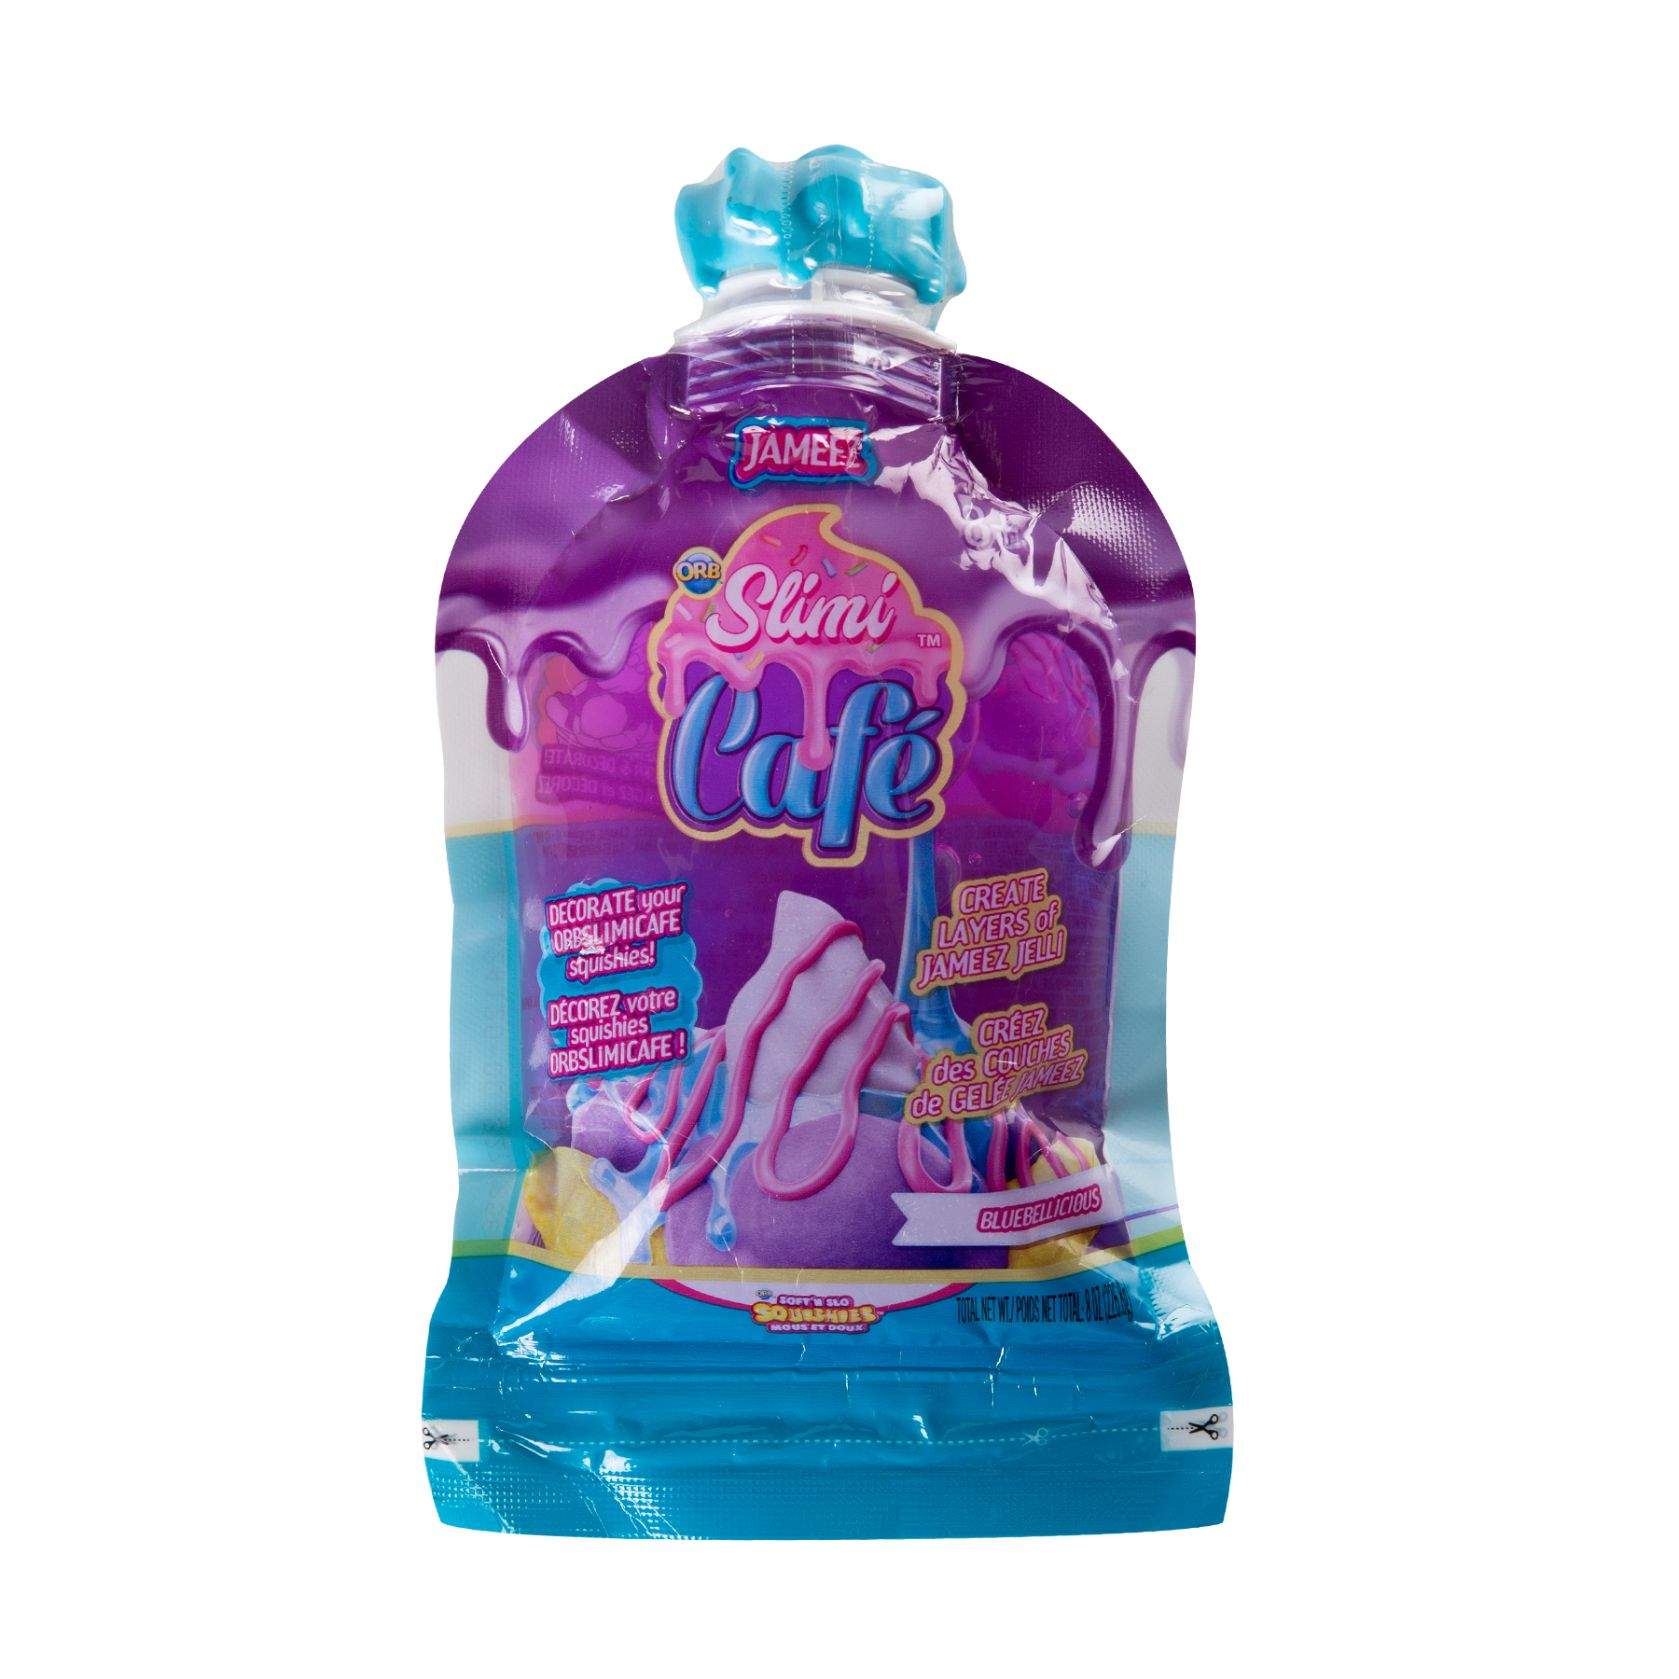 ORB Slimi Cafe Jameez Bluebellicious  Scented